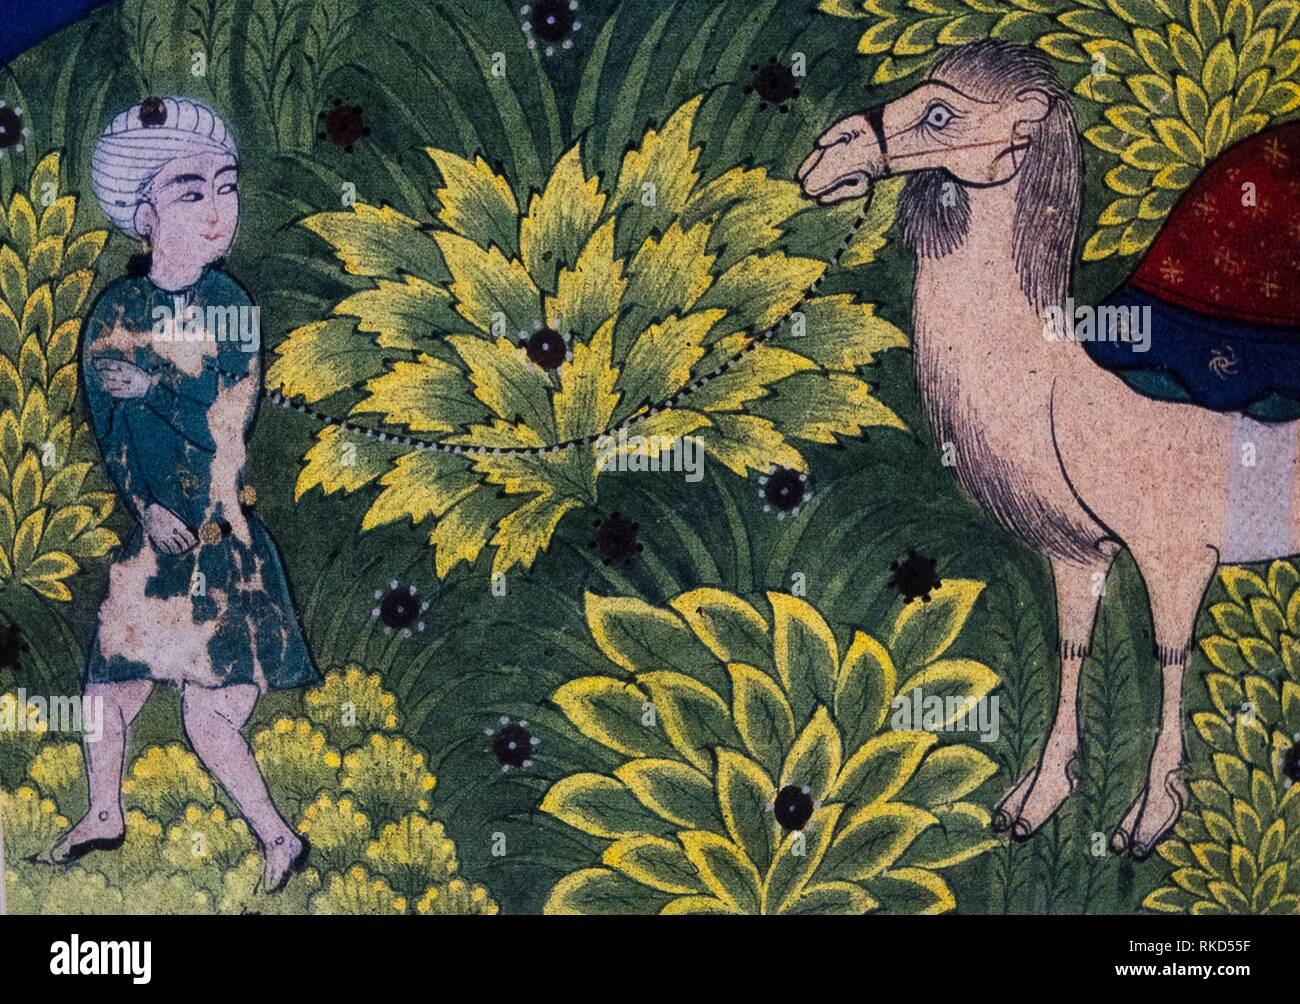 Islam. Persian miniature by Muhammad Ibn Daud Shadiyabadi, XVc. representing green area where camels, soo important for commercial exchange and wars, - Stock Image